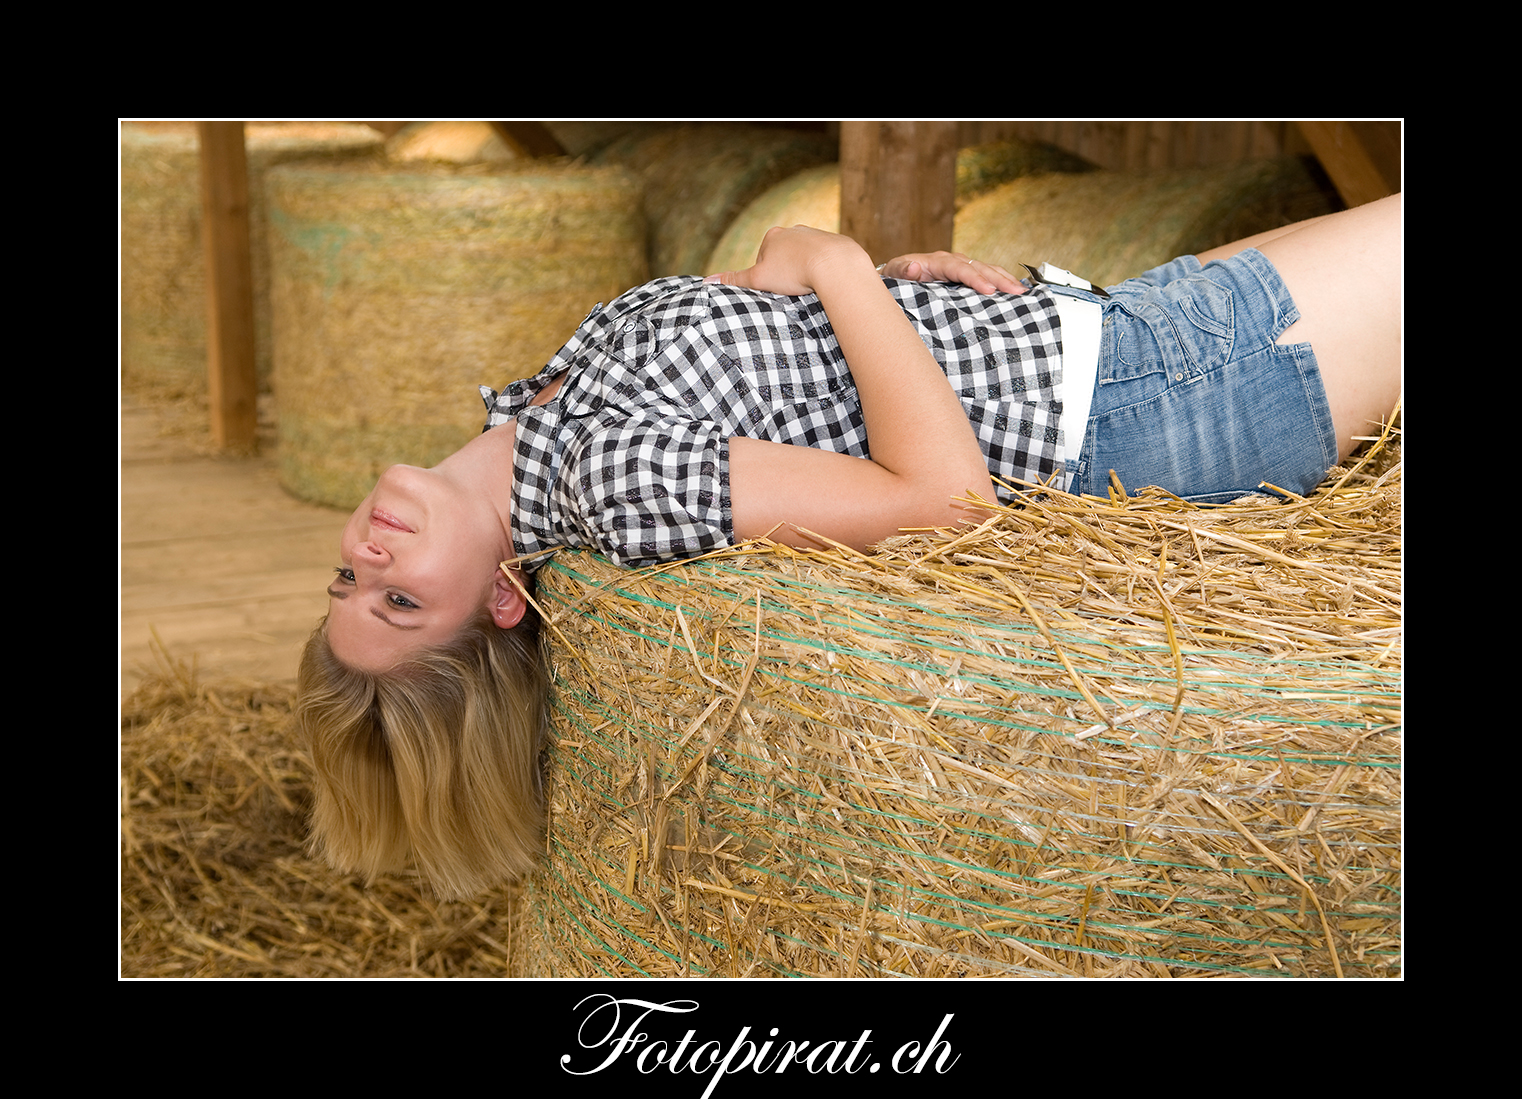 Fotoshooting, On Location, Bauernkalender, Modelagentur, Fotomodel, Bauernmädchen, blond